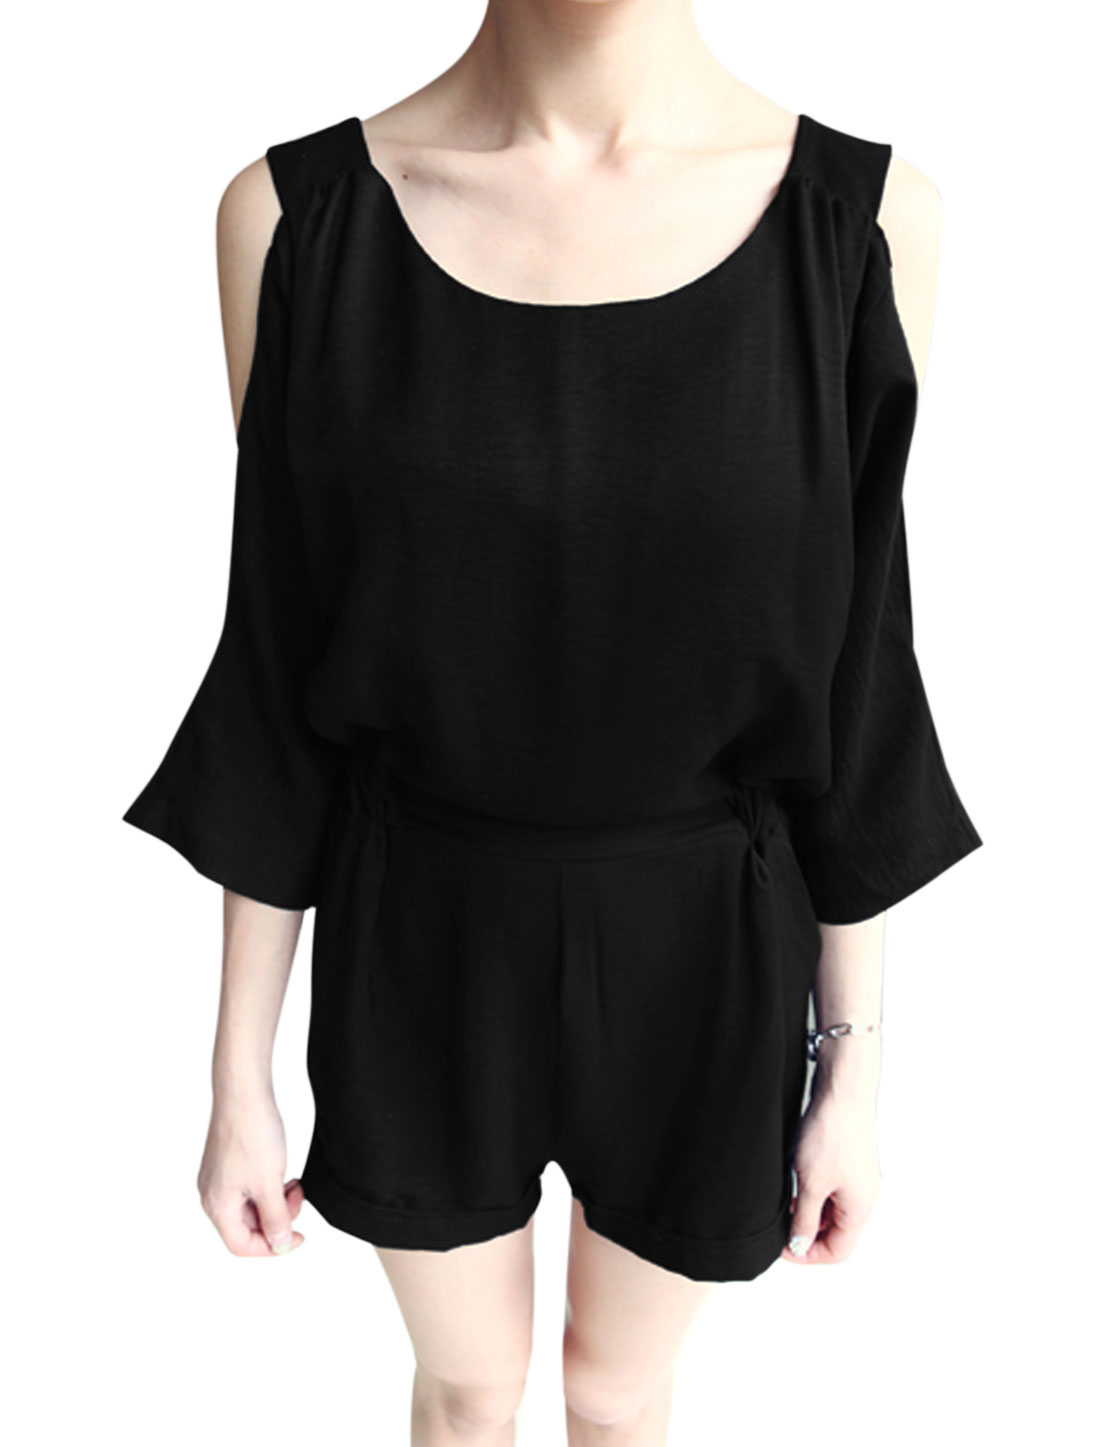 Women Batwing Sleeve Cut Out Shoulder Pockets Casual Playsuit Black M